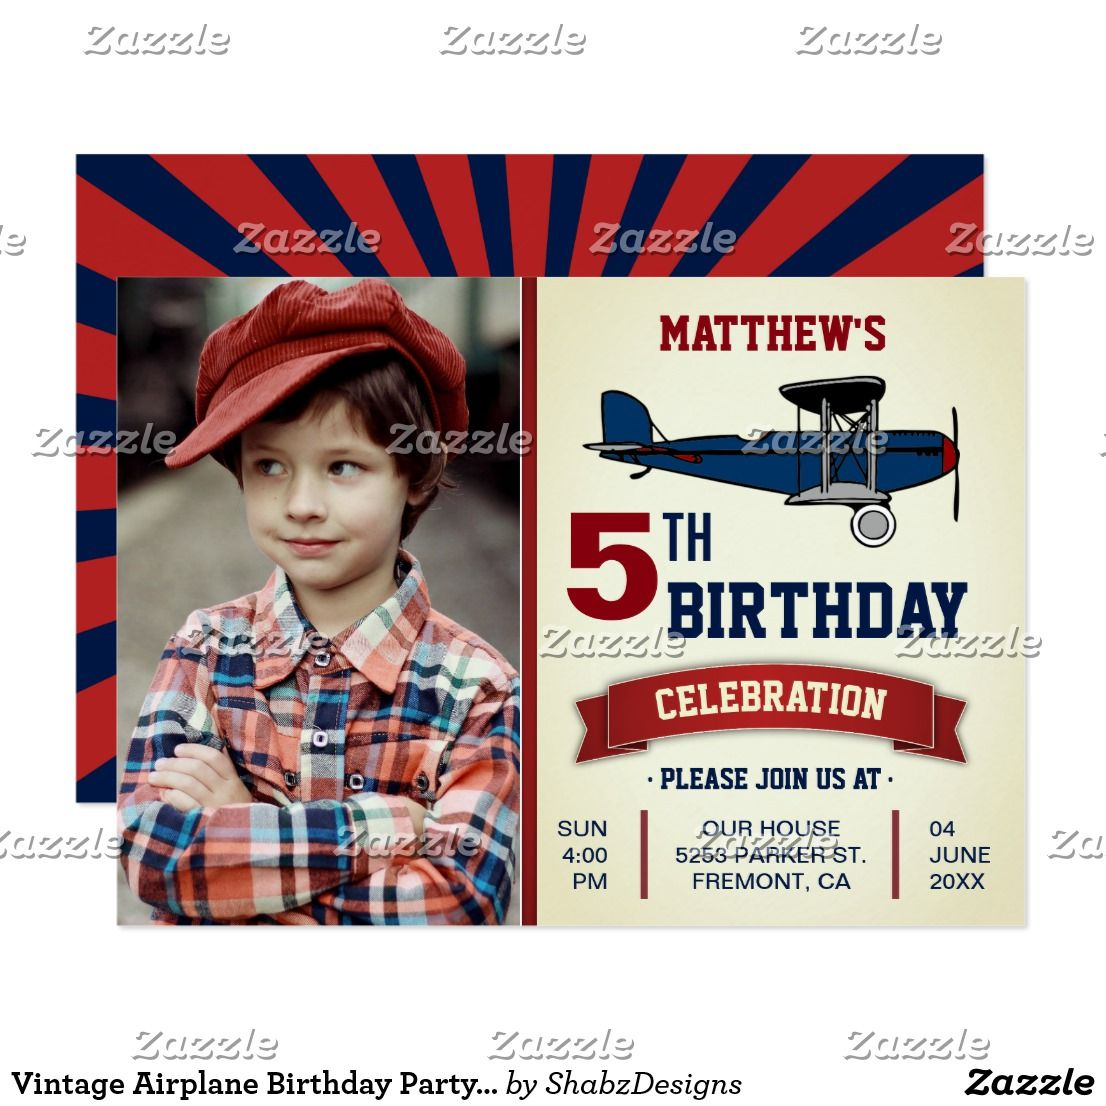 Vintage Airplane Birthday Party Photo Invitation | Vintage airplanes ...